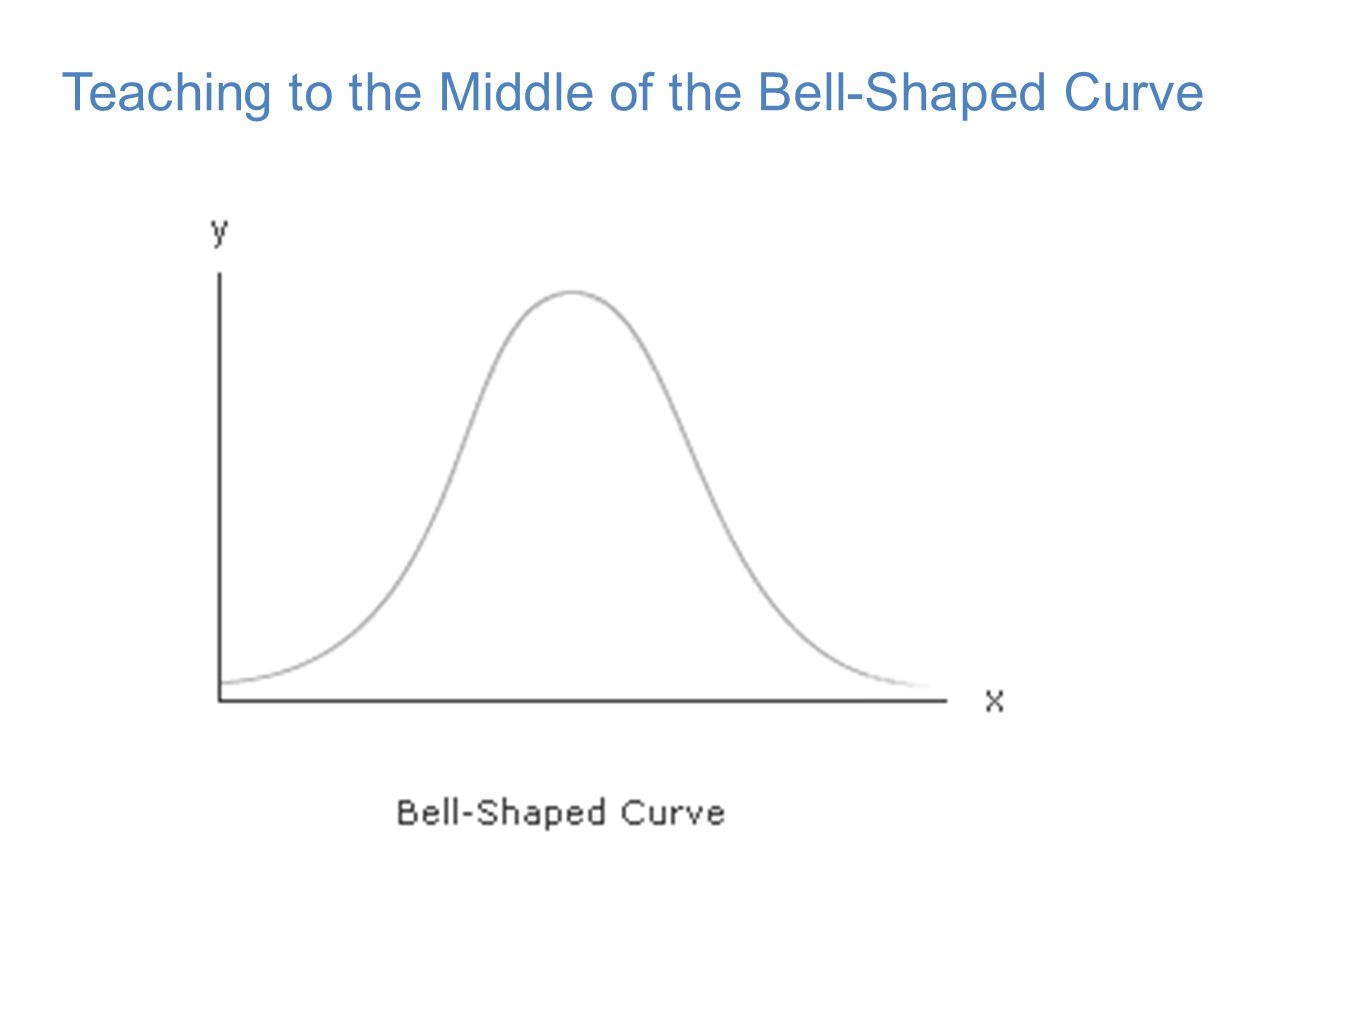 Teaching to the Middle of the Bell-Shaped Curve